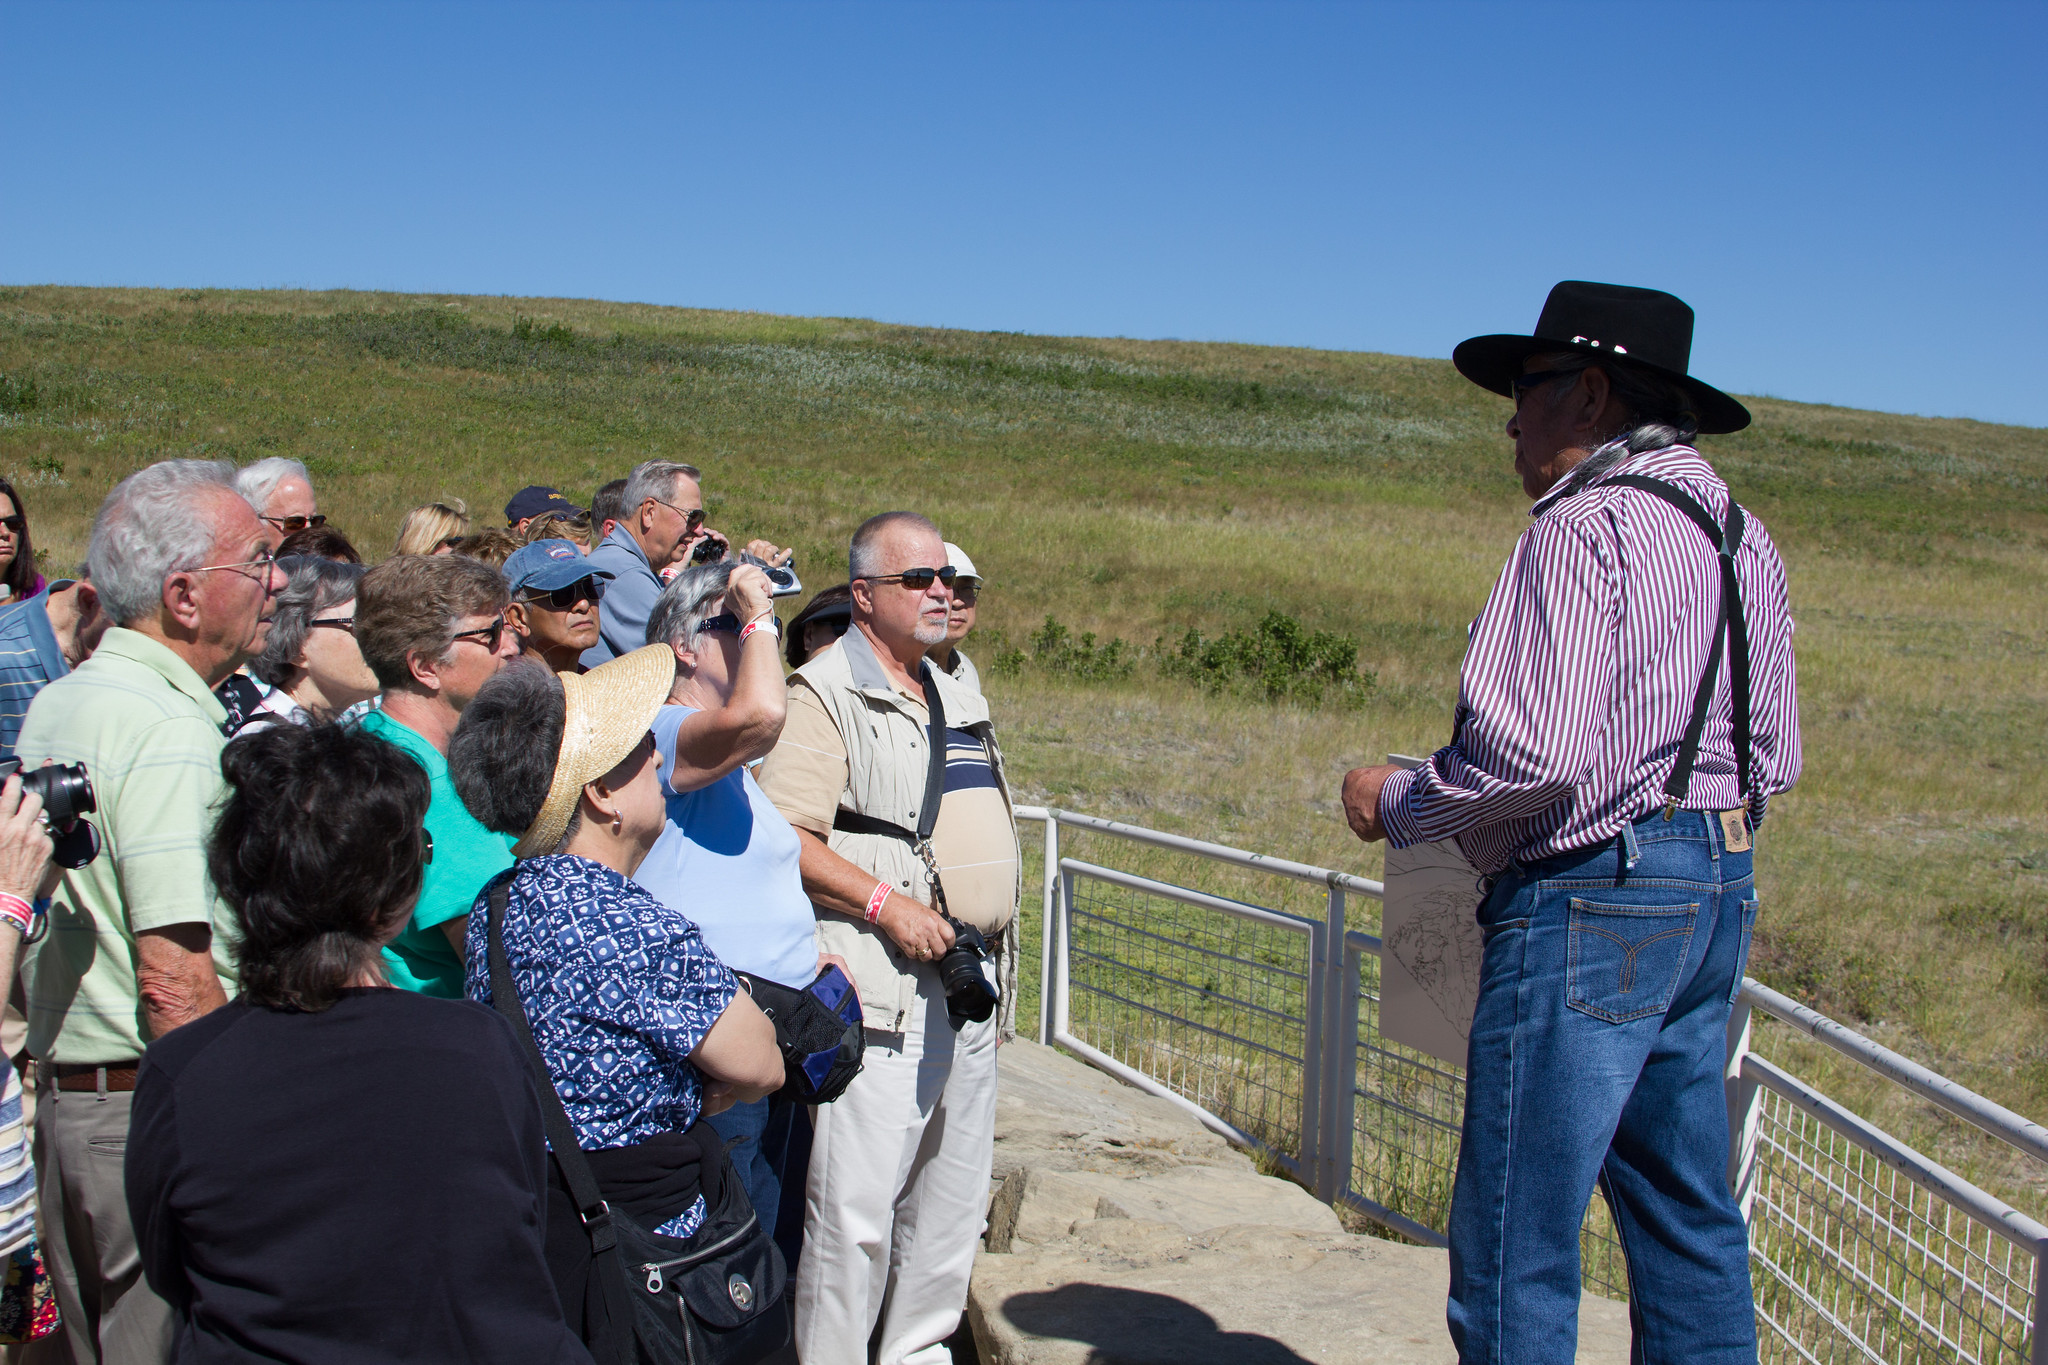 Tourists gather around a man wearing a cowboy hat next to a short metal fence in front of a plain.